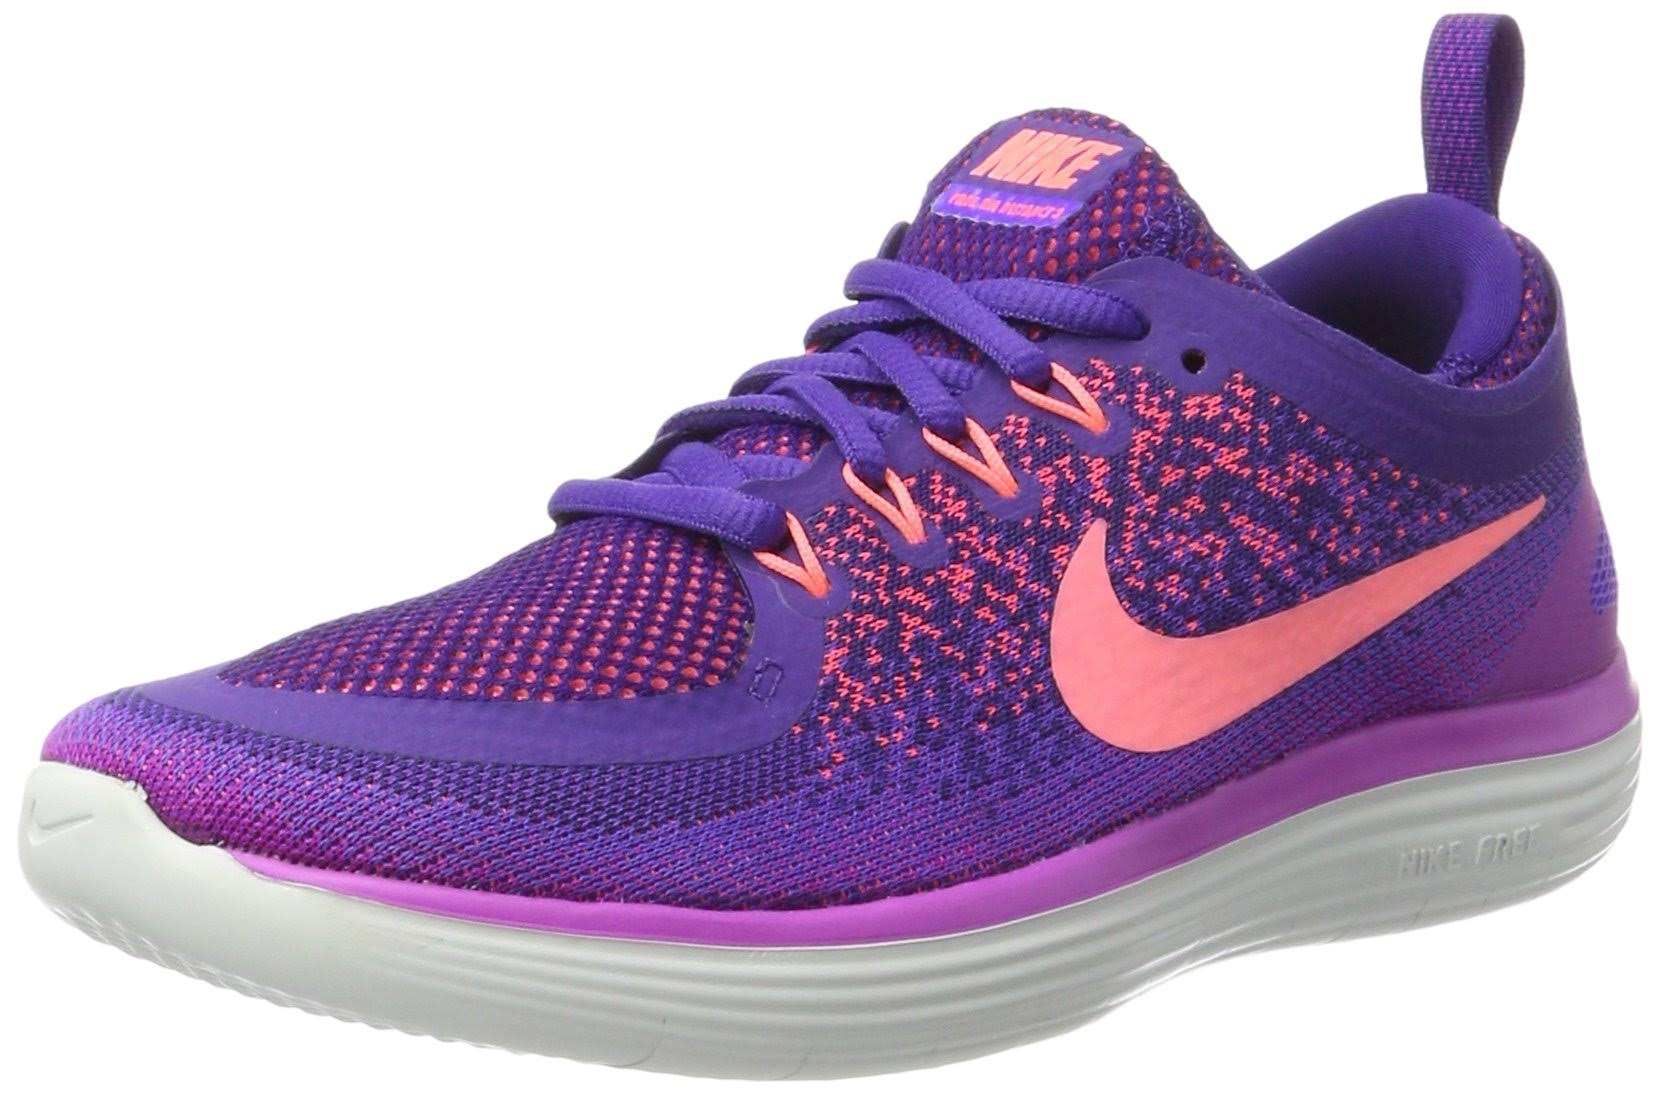 Run Grape 2 hyper Purple Purple Glow court Damen Nike Free Violett 39 Eu lava Distance Laufschuhe Tq8T1cEw